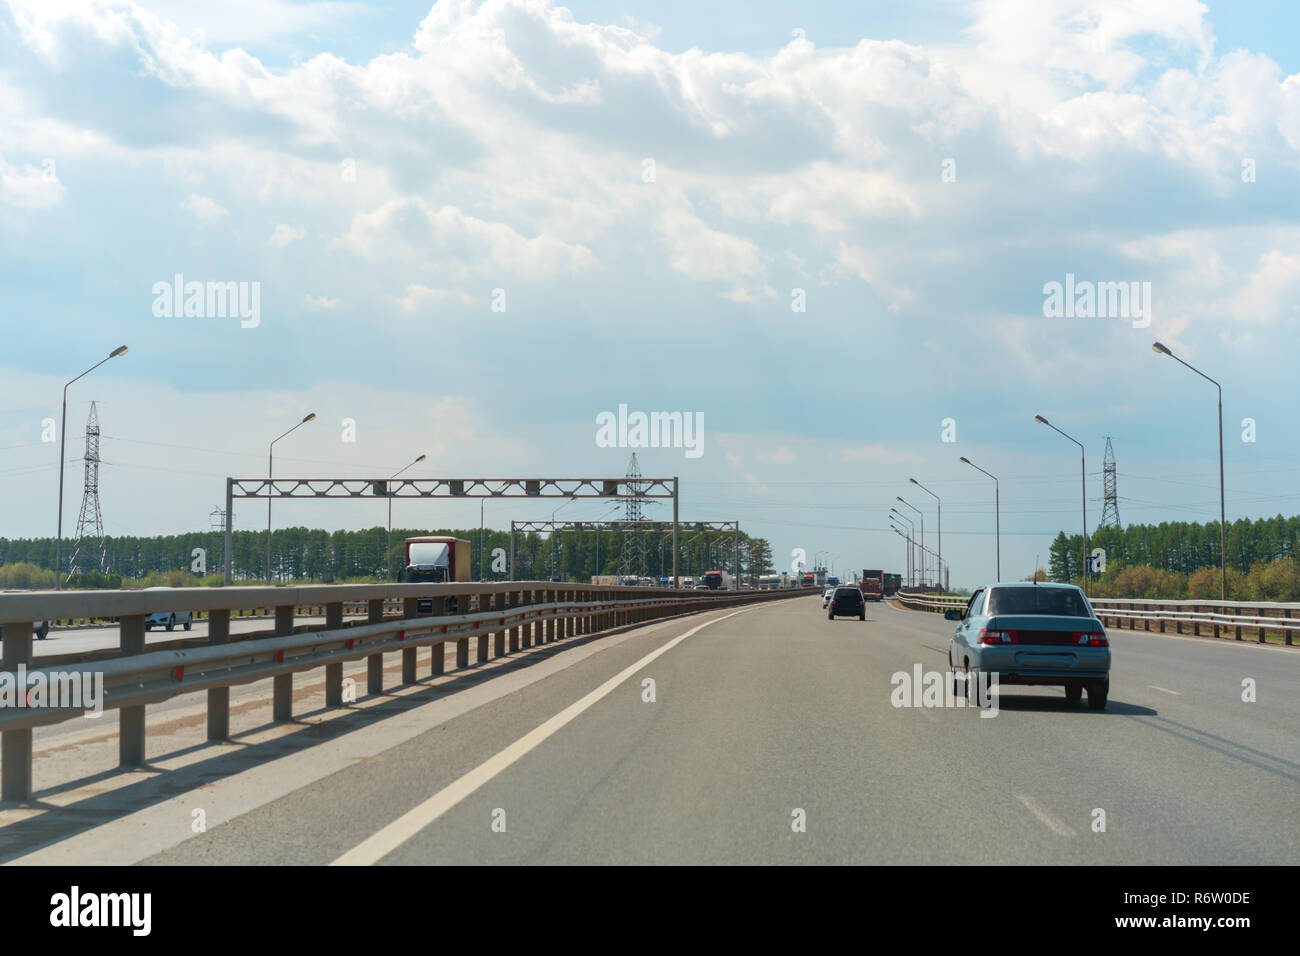 View of paved freeway with lanterns on sides and cars driving among green summer trees in cloudy day Stock Photo